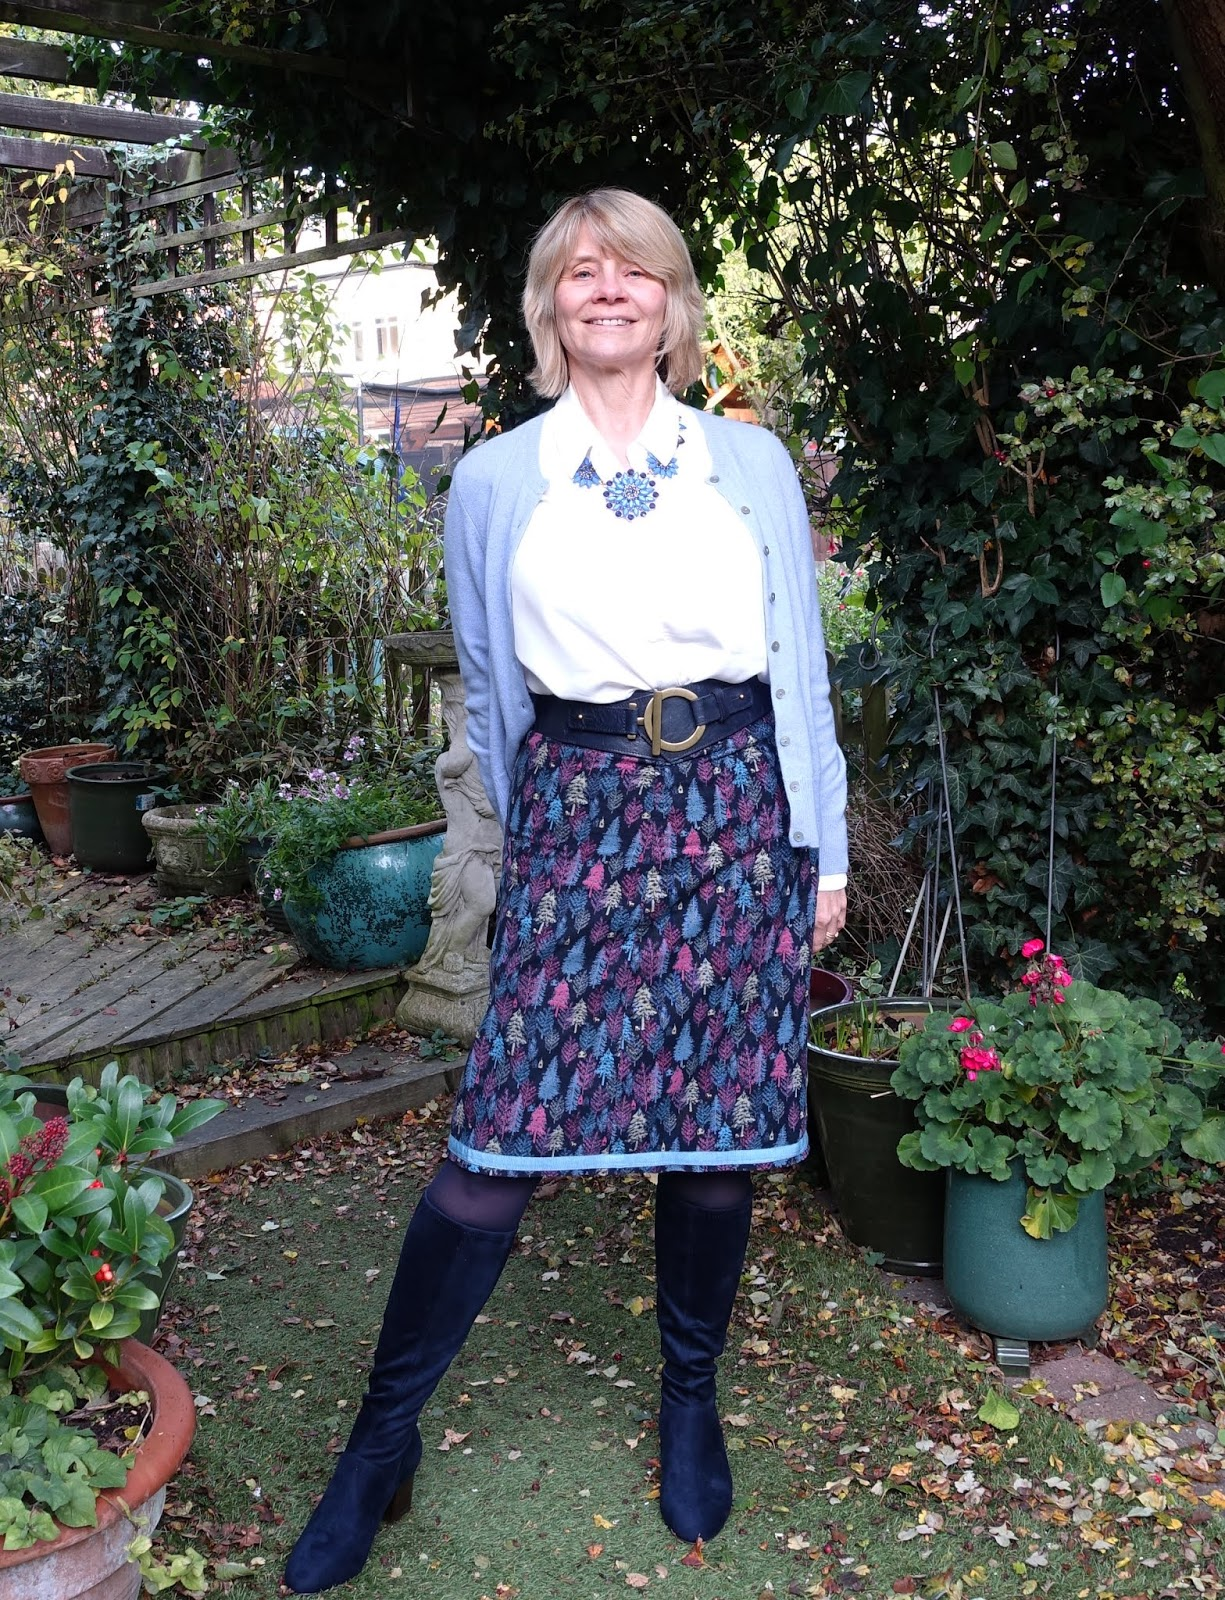 Over-50s fashion blogger Gail Hanlon from Is This Mutton shows how a formerly boring outfit of a print skirt and long cardigan is improved with a wide belt, necklace and long round toed boots